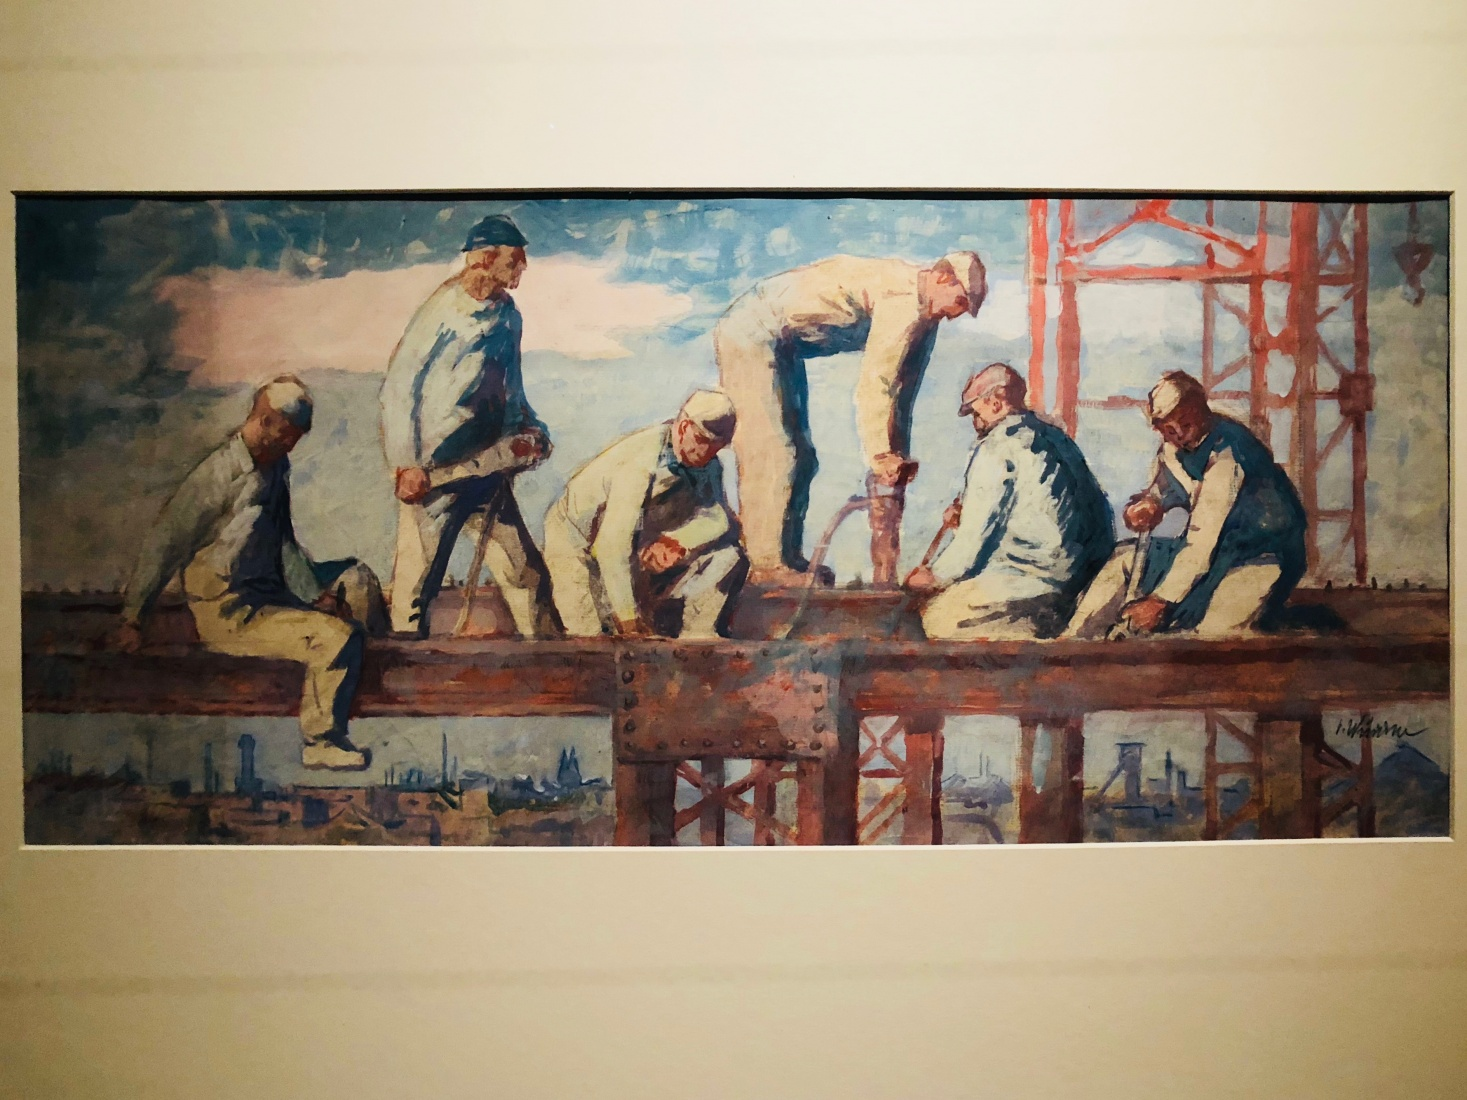 A typical art piece celebrating the heroic efforts of workers, a hallmark of the Socialist-Realism phase of art and architecture of the early 1950s.